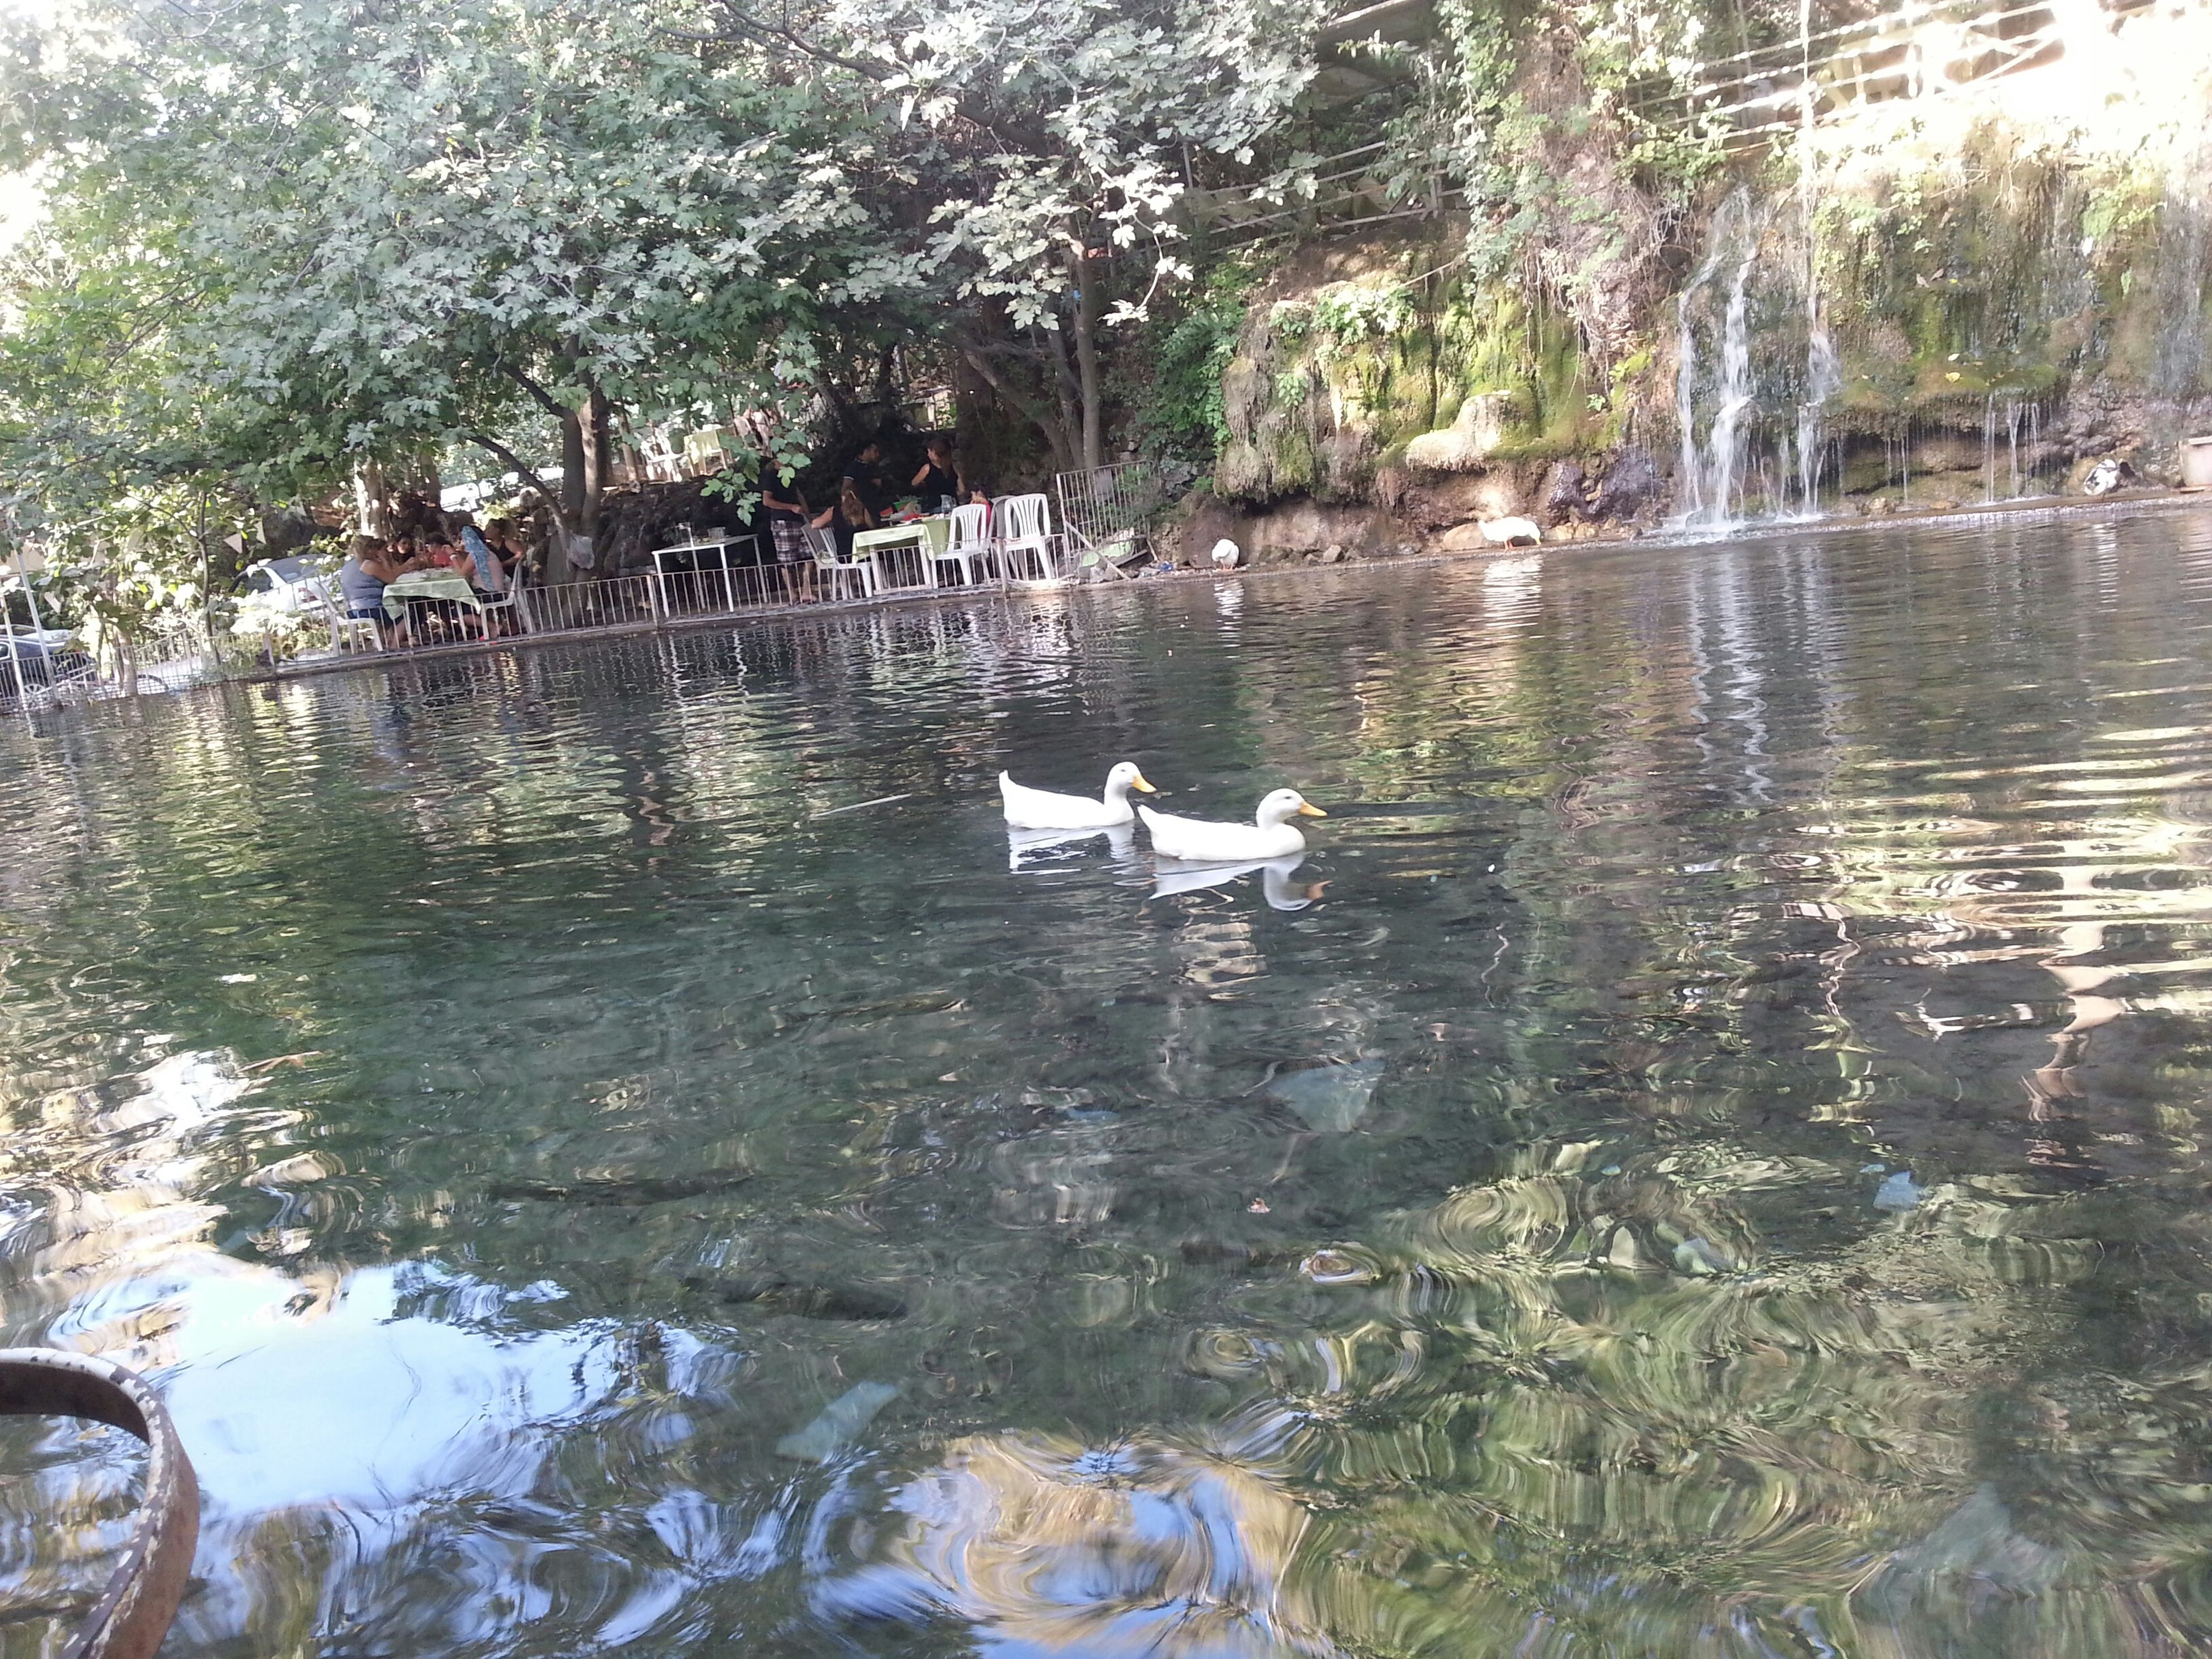 water, animal themes, tree, bird, animals in the wild, lake, wildlife, swimming, reflection, nature, waterfront, duck, swan, tranquility, rippled, day, pond, one animal, beauty in nature, two animals